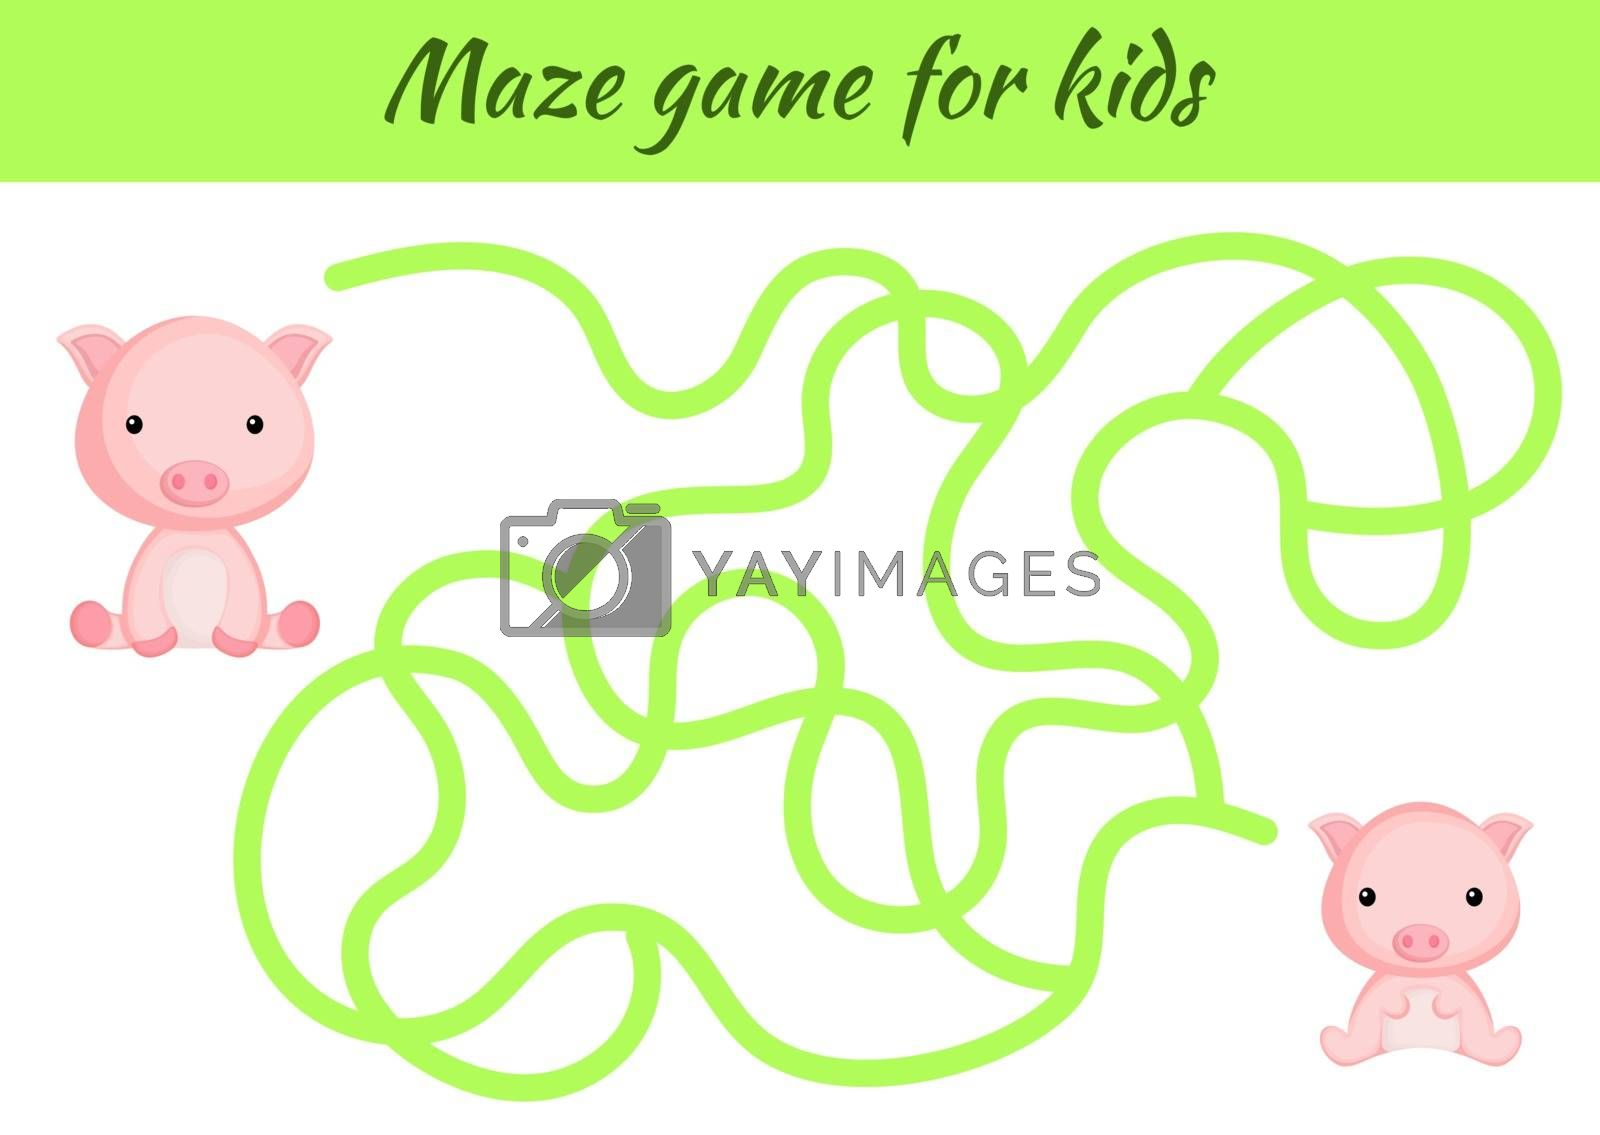 Funny maze or labyrinth game for kids. Help mother find path to baby. Education developing worksheet. Activity page. Cartoon pig characters. Riddle for preschool. Color vector stock illustration.